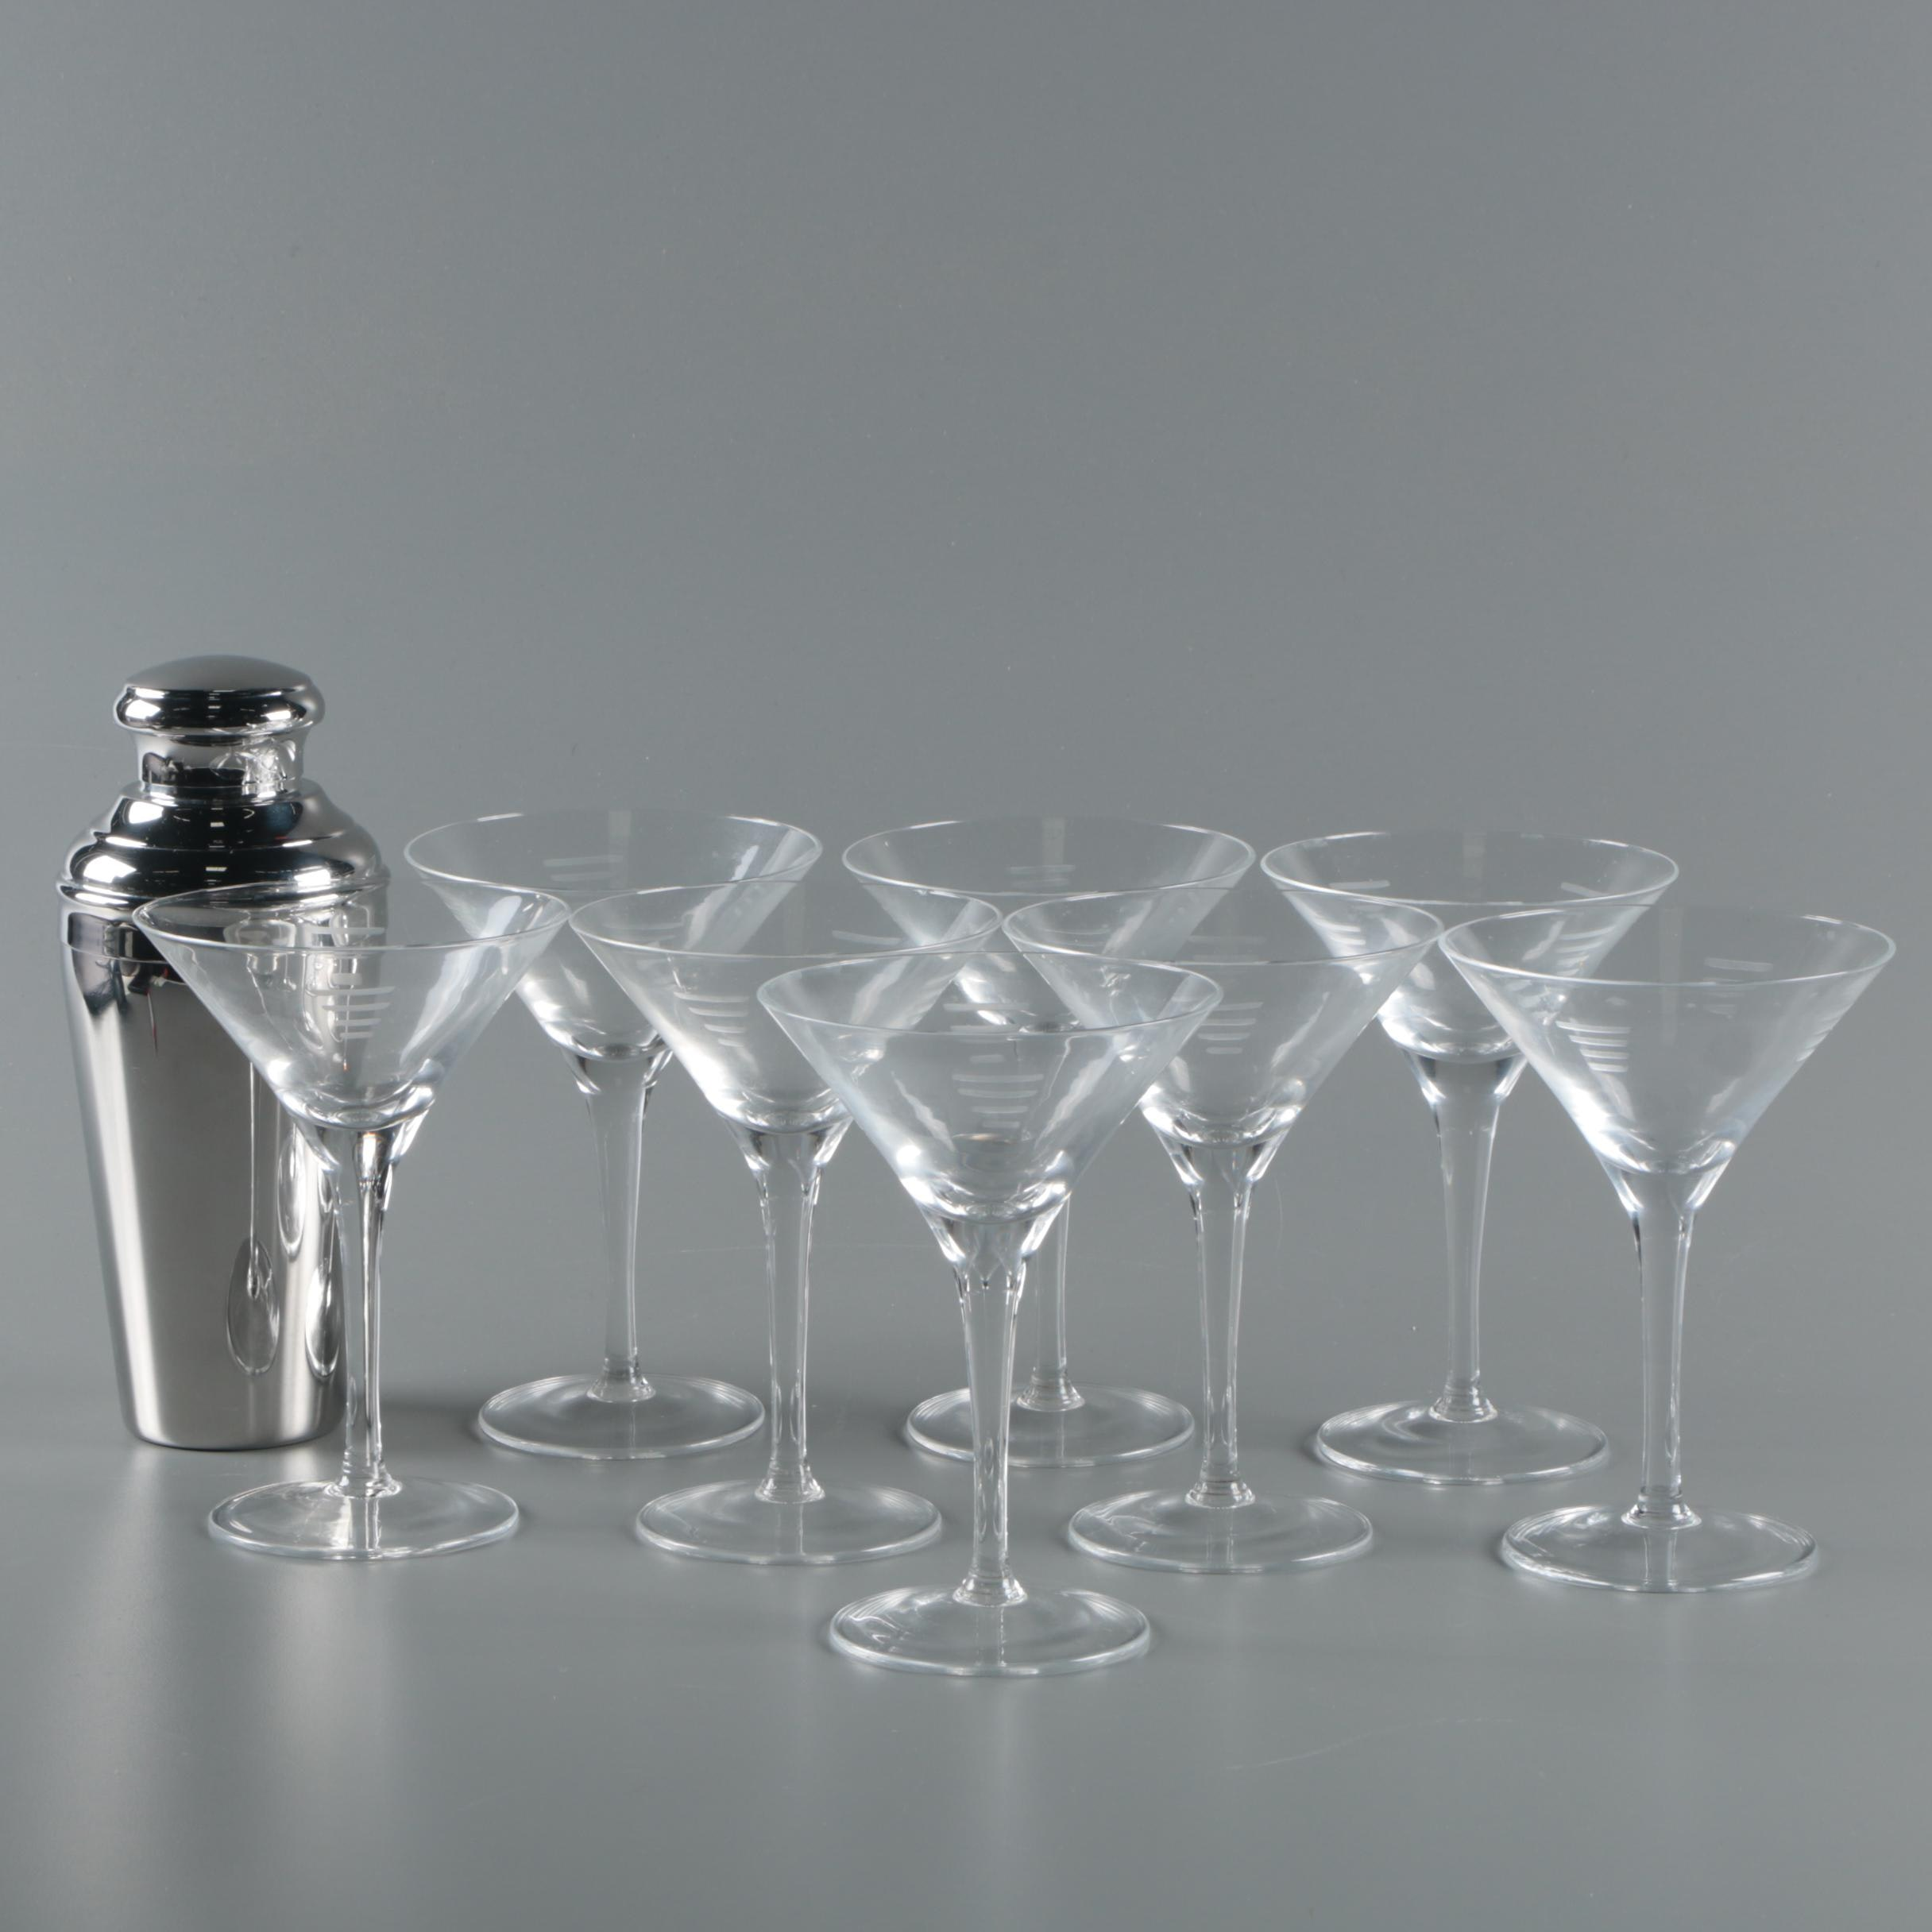 Stainless Steel Shaker with Etched Martini Glasses